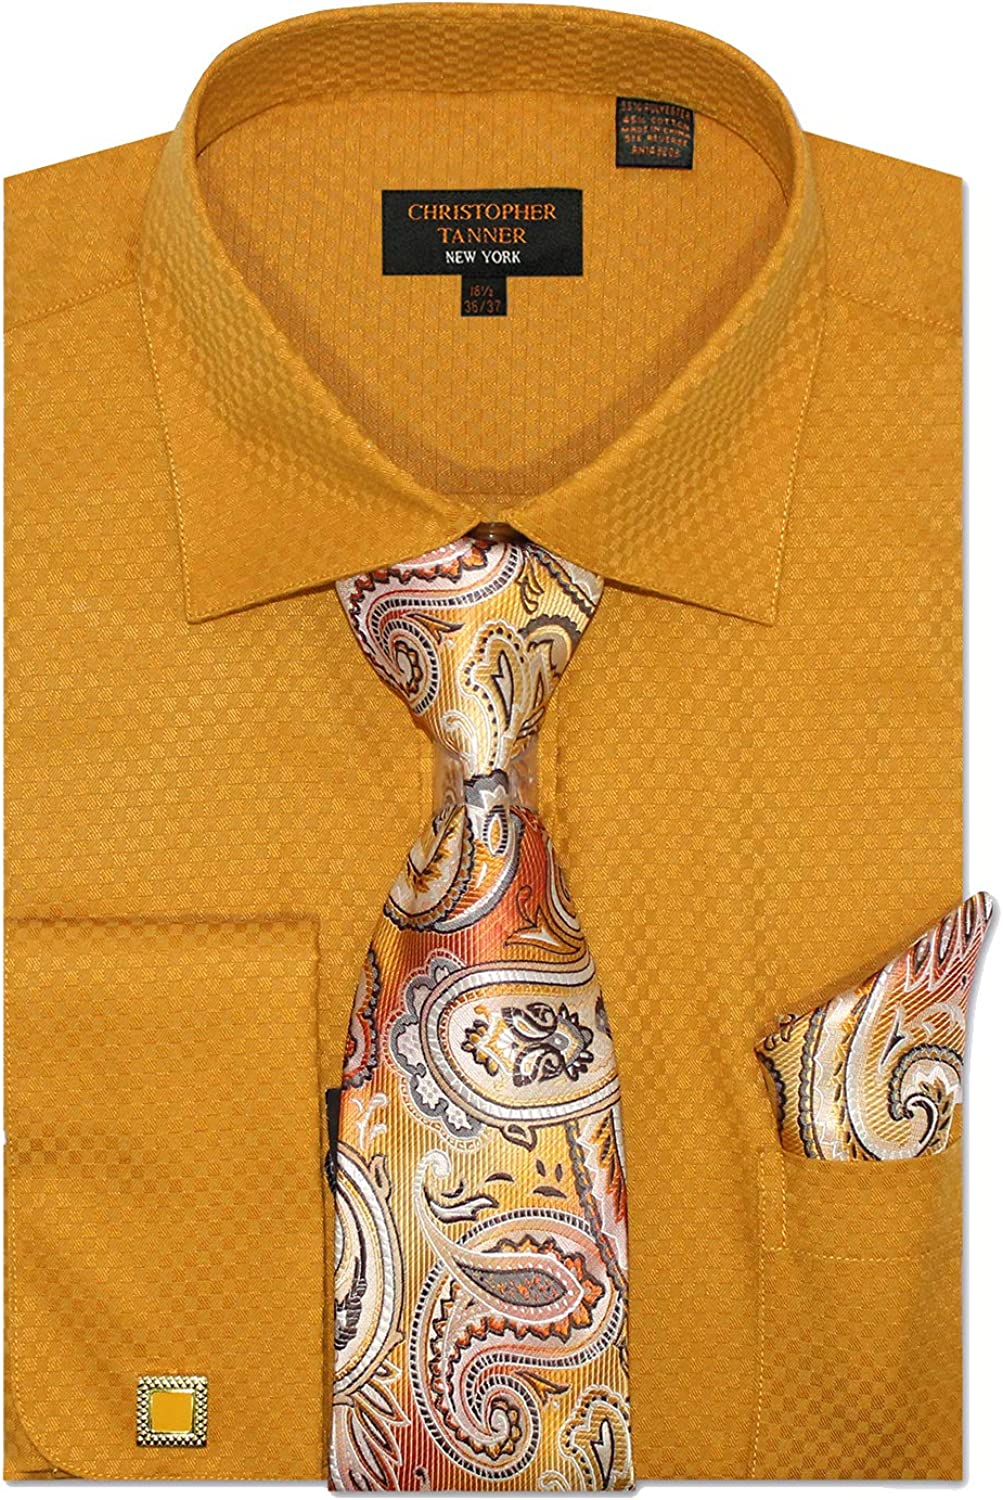 Men's Solid Square Pattern Regular Fit Dress Shirts with Tie Hanky Cufflinks Combo French Cuffs